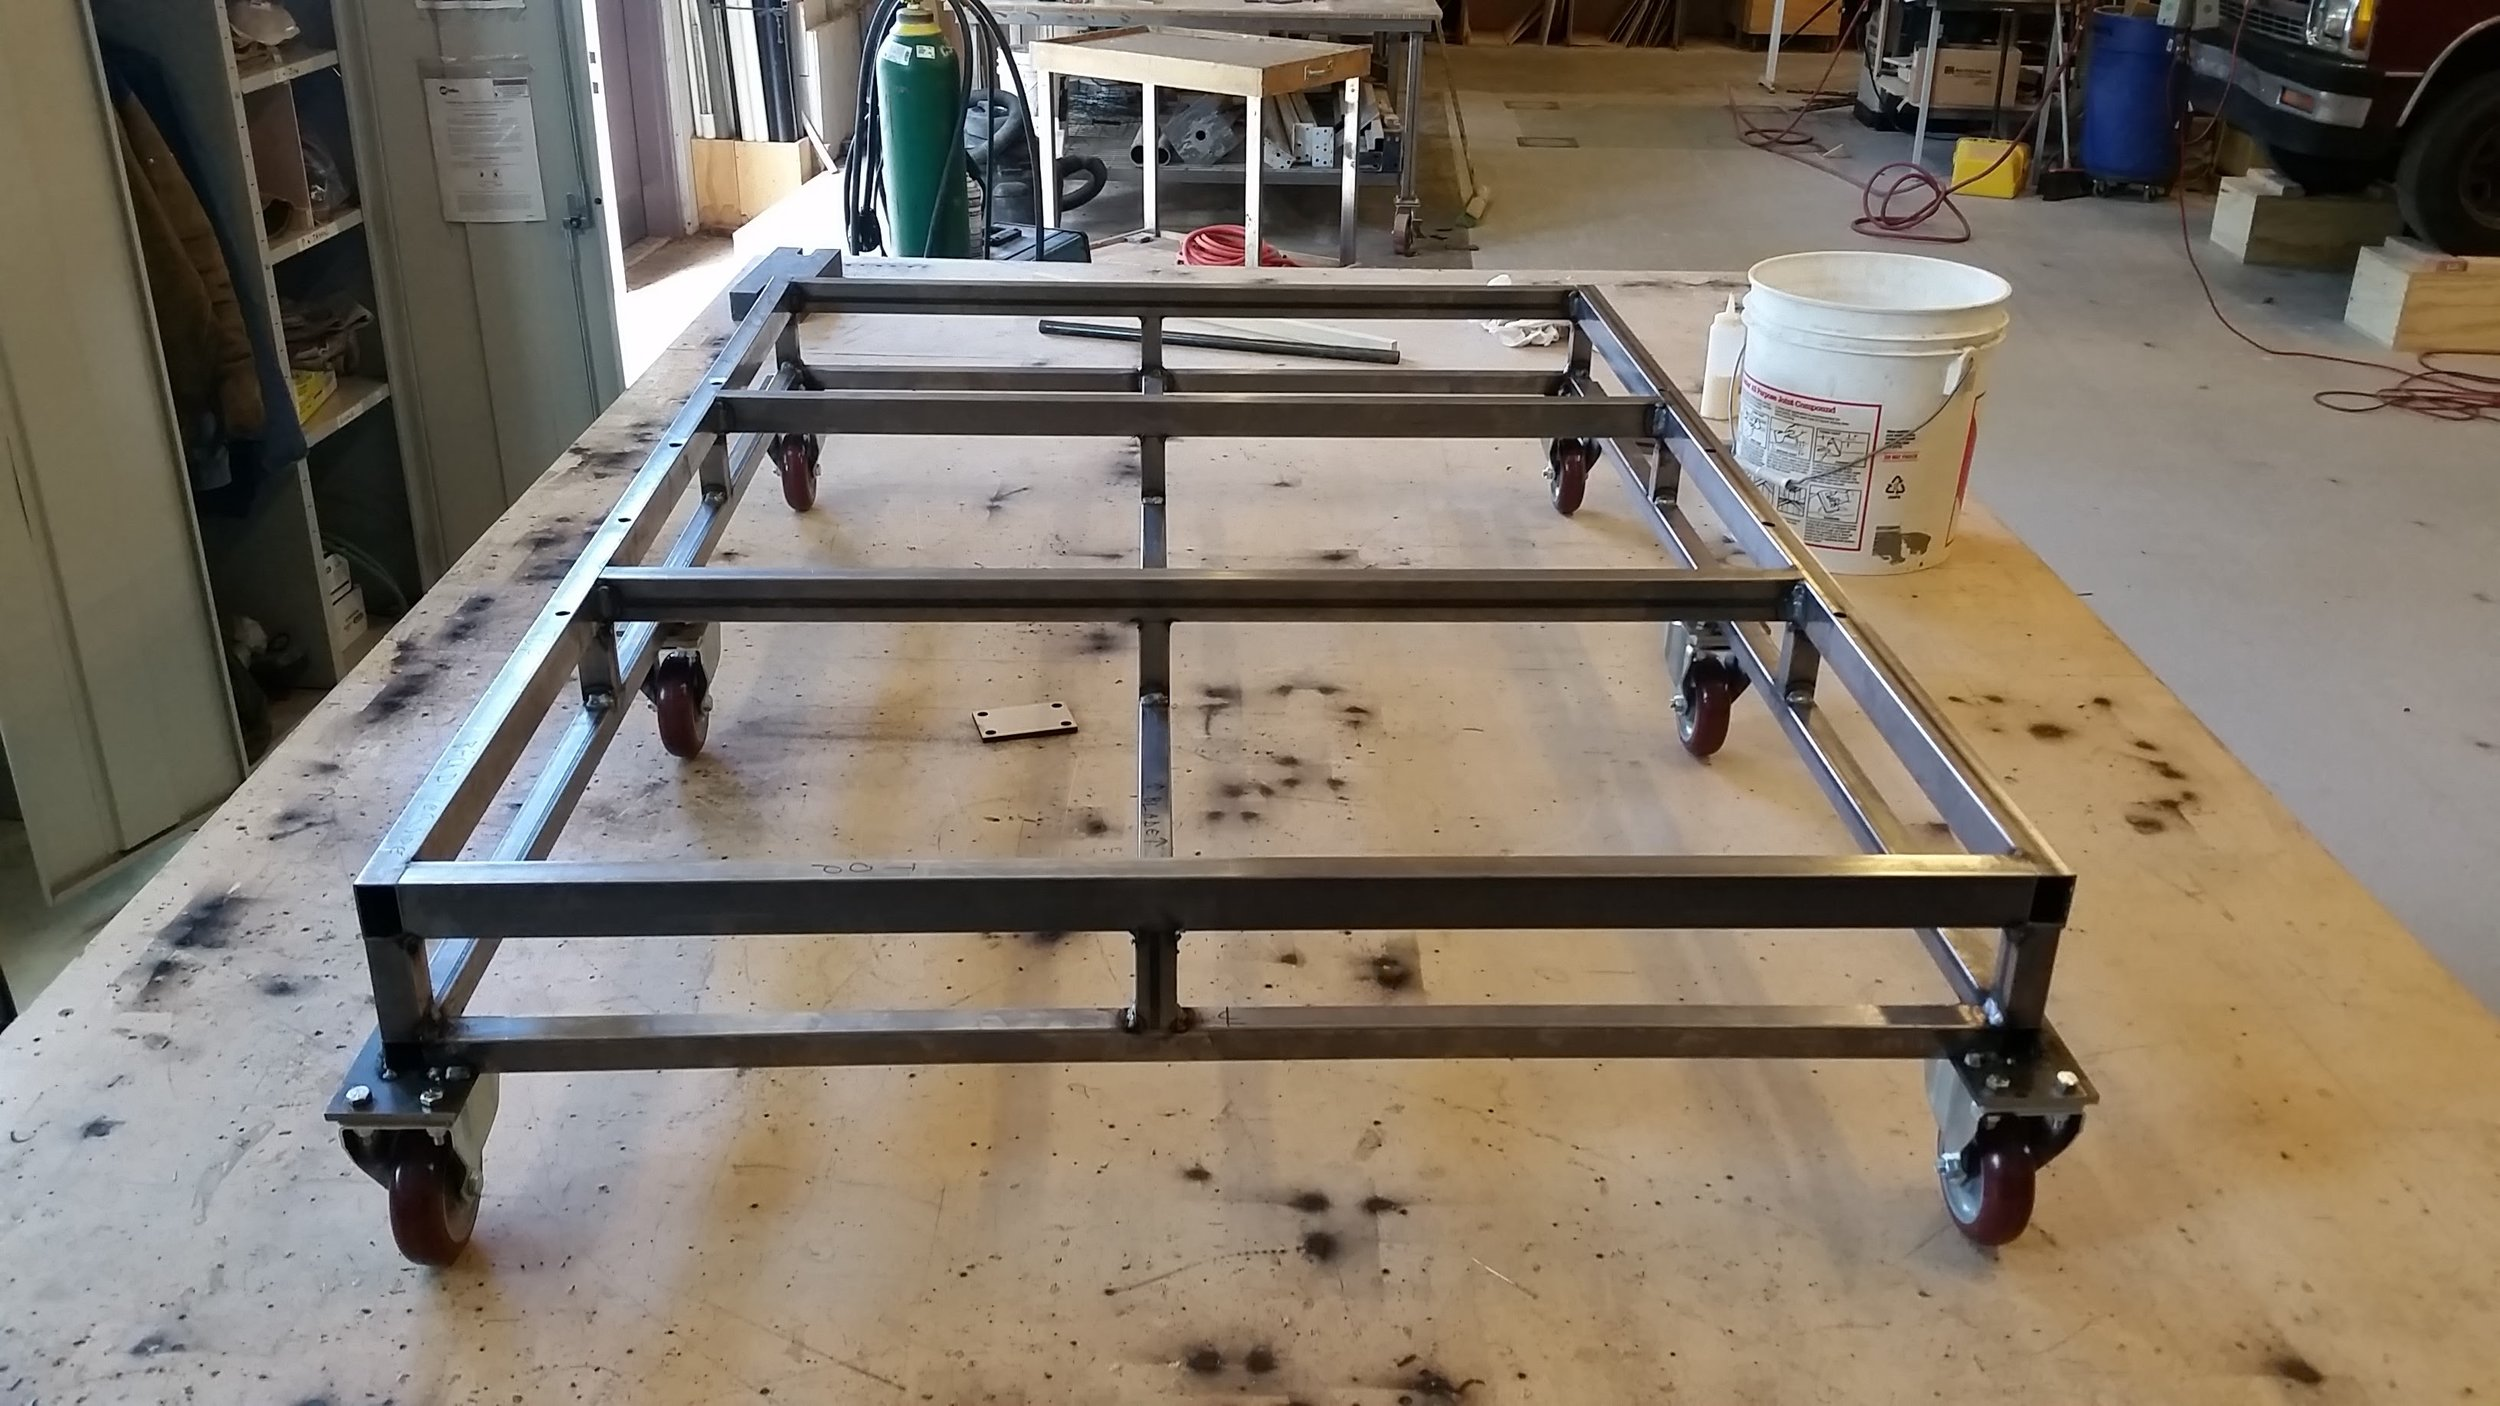 Truck carriage frame, before extra casters were added.